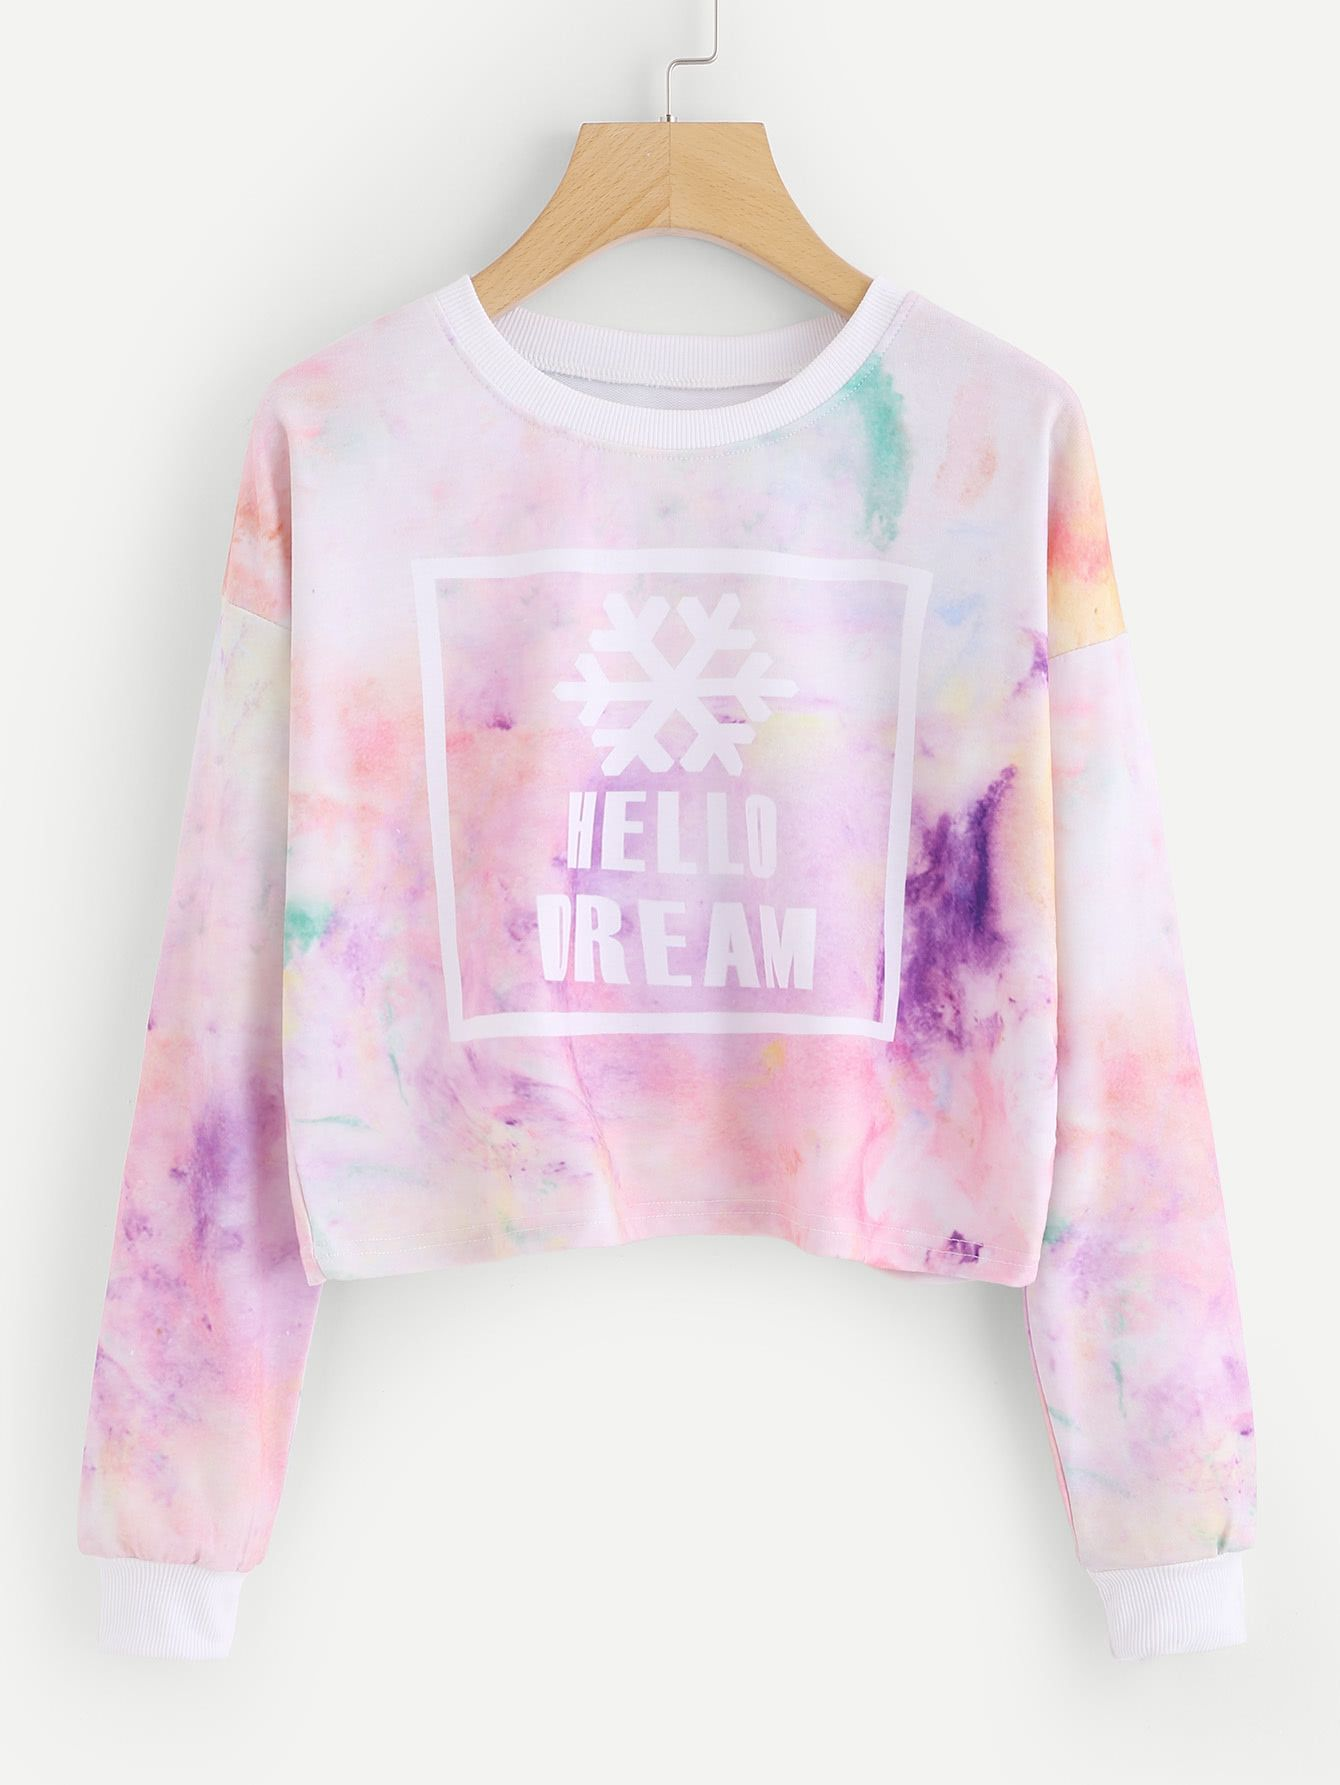 Water Color Letter Print Tee | Clothing & Beauty | Pinterest | Romwe ...